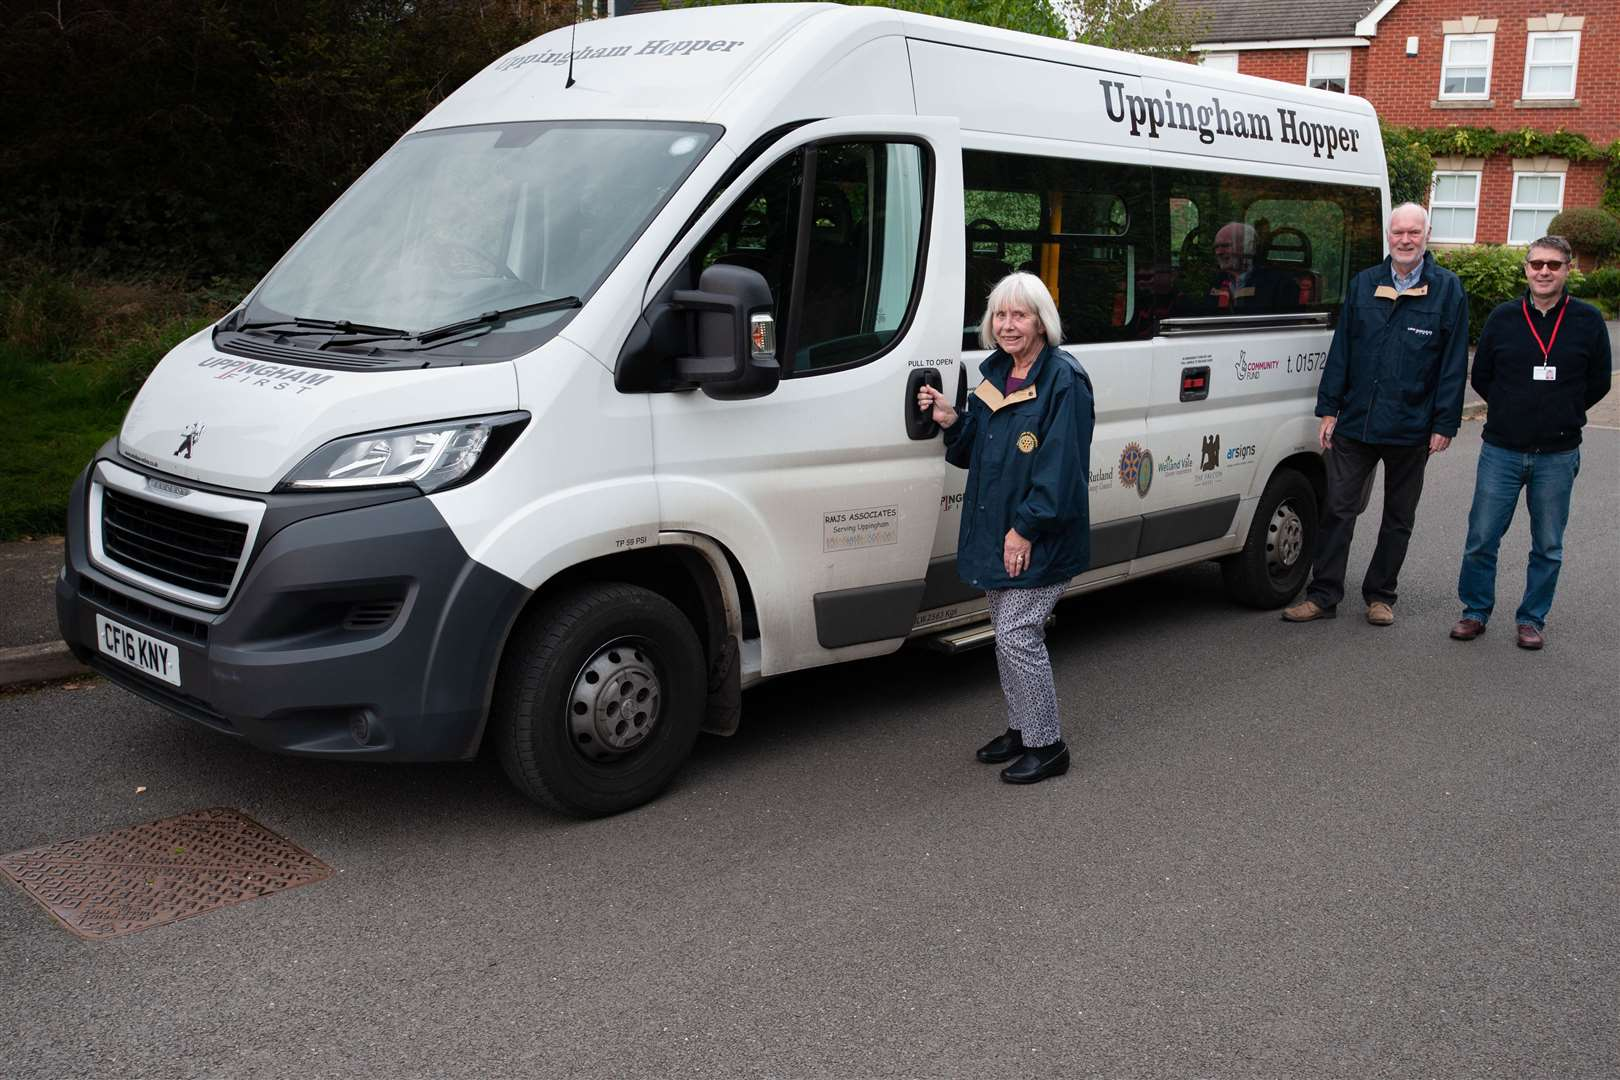 Margaret Simpson, David Ainsely and Richard Holman from the Uppingham Hopper Bus.Photo: Alan Walters